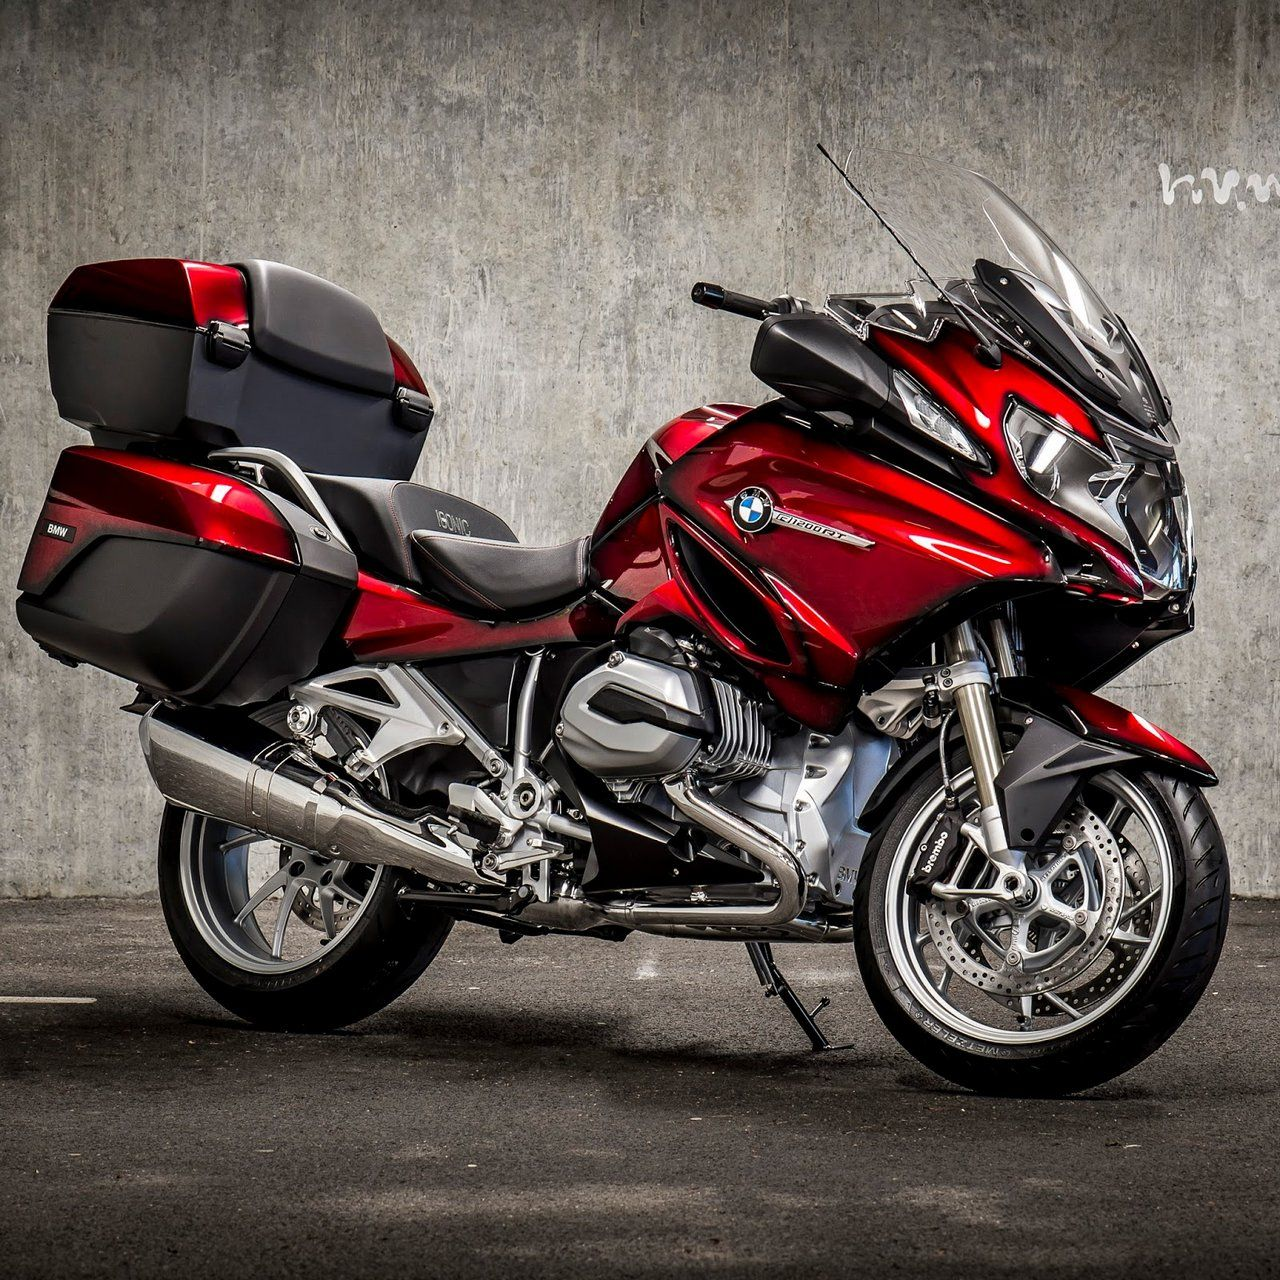 Bmw R 1200 Rt Iconic Bmw Motorcycle Touring Bmw R1200rt Bmw Motorcycles